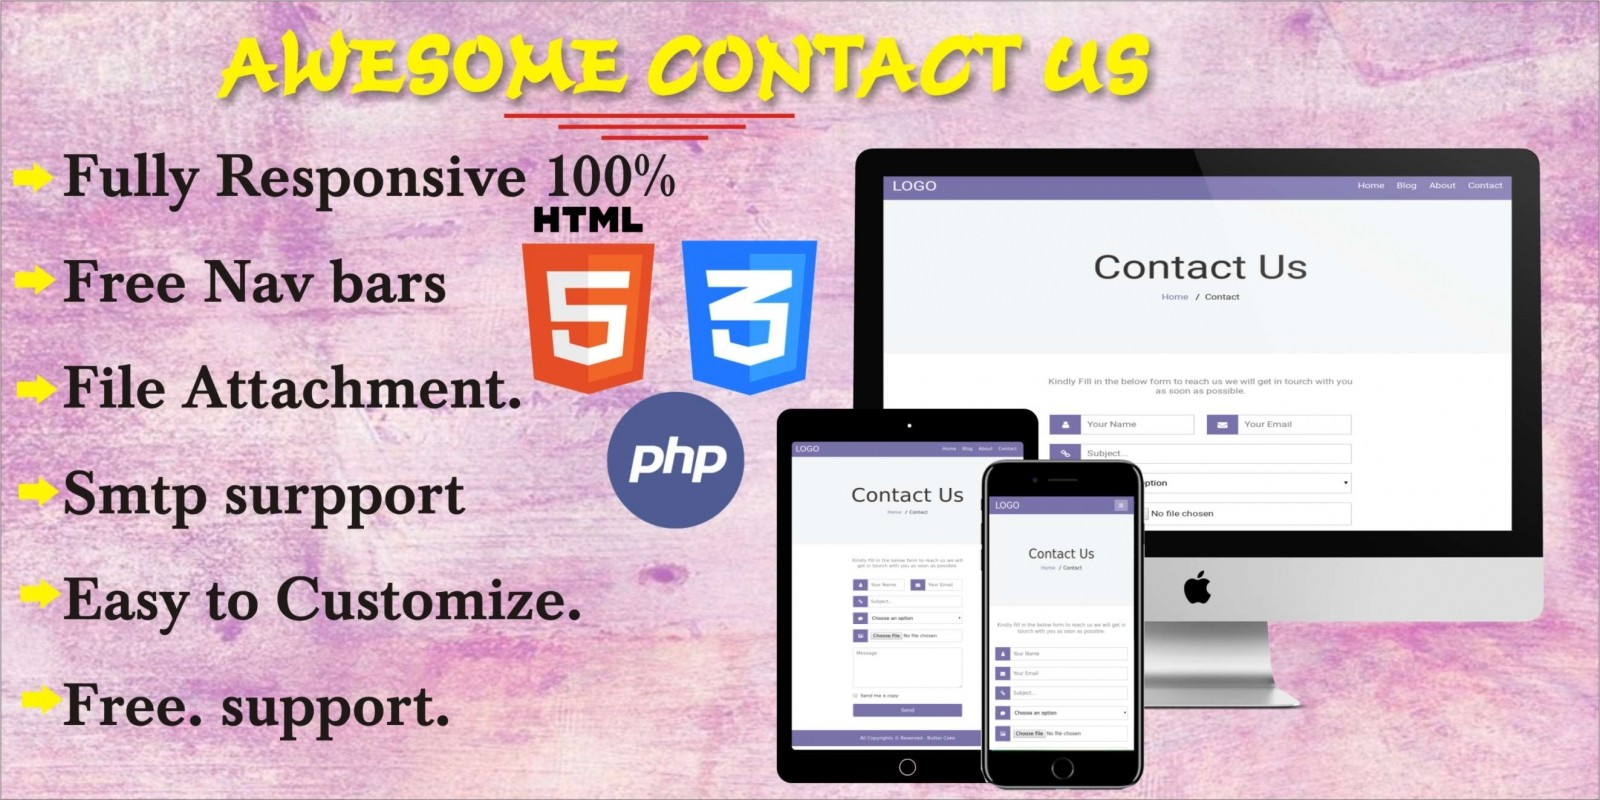 Awesome Contact Us Page